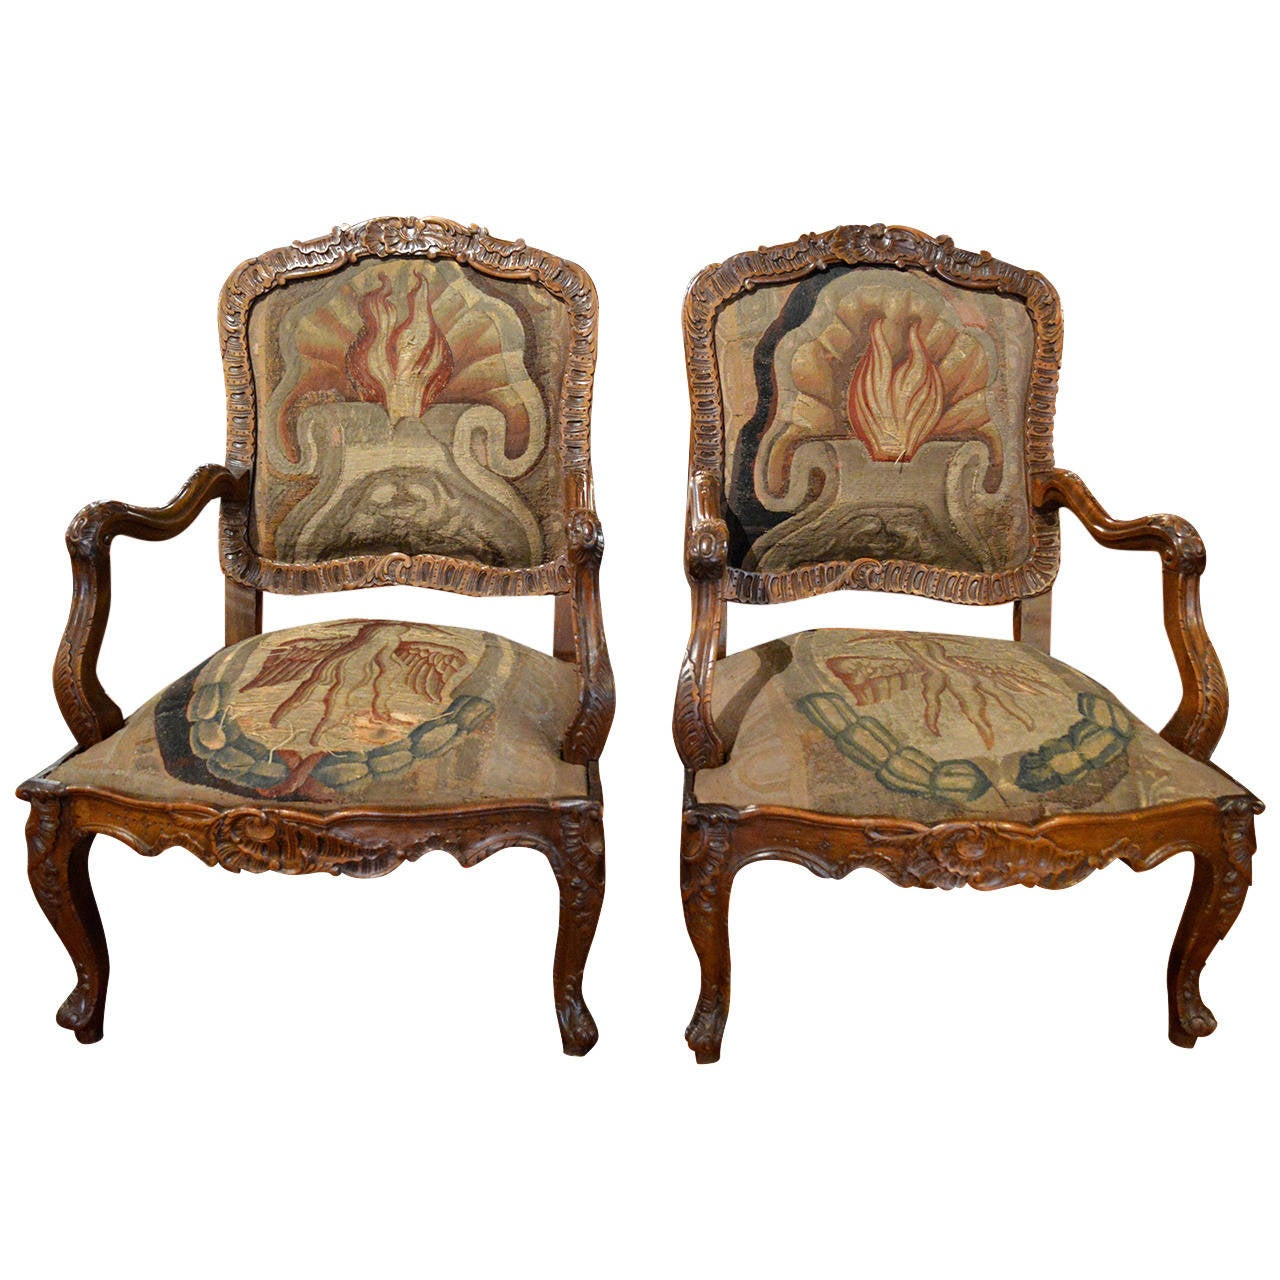 Pair of finely carved walnut louis xv style rococo fauteuil a la reine at 1st - Fauteuil style louis xv ...